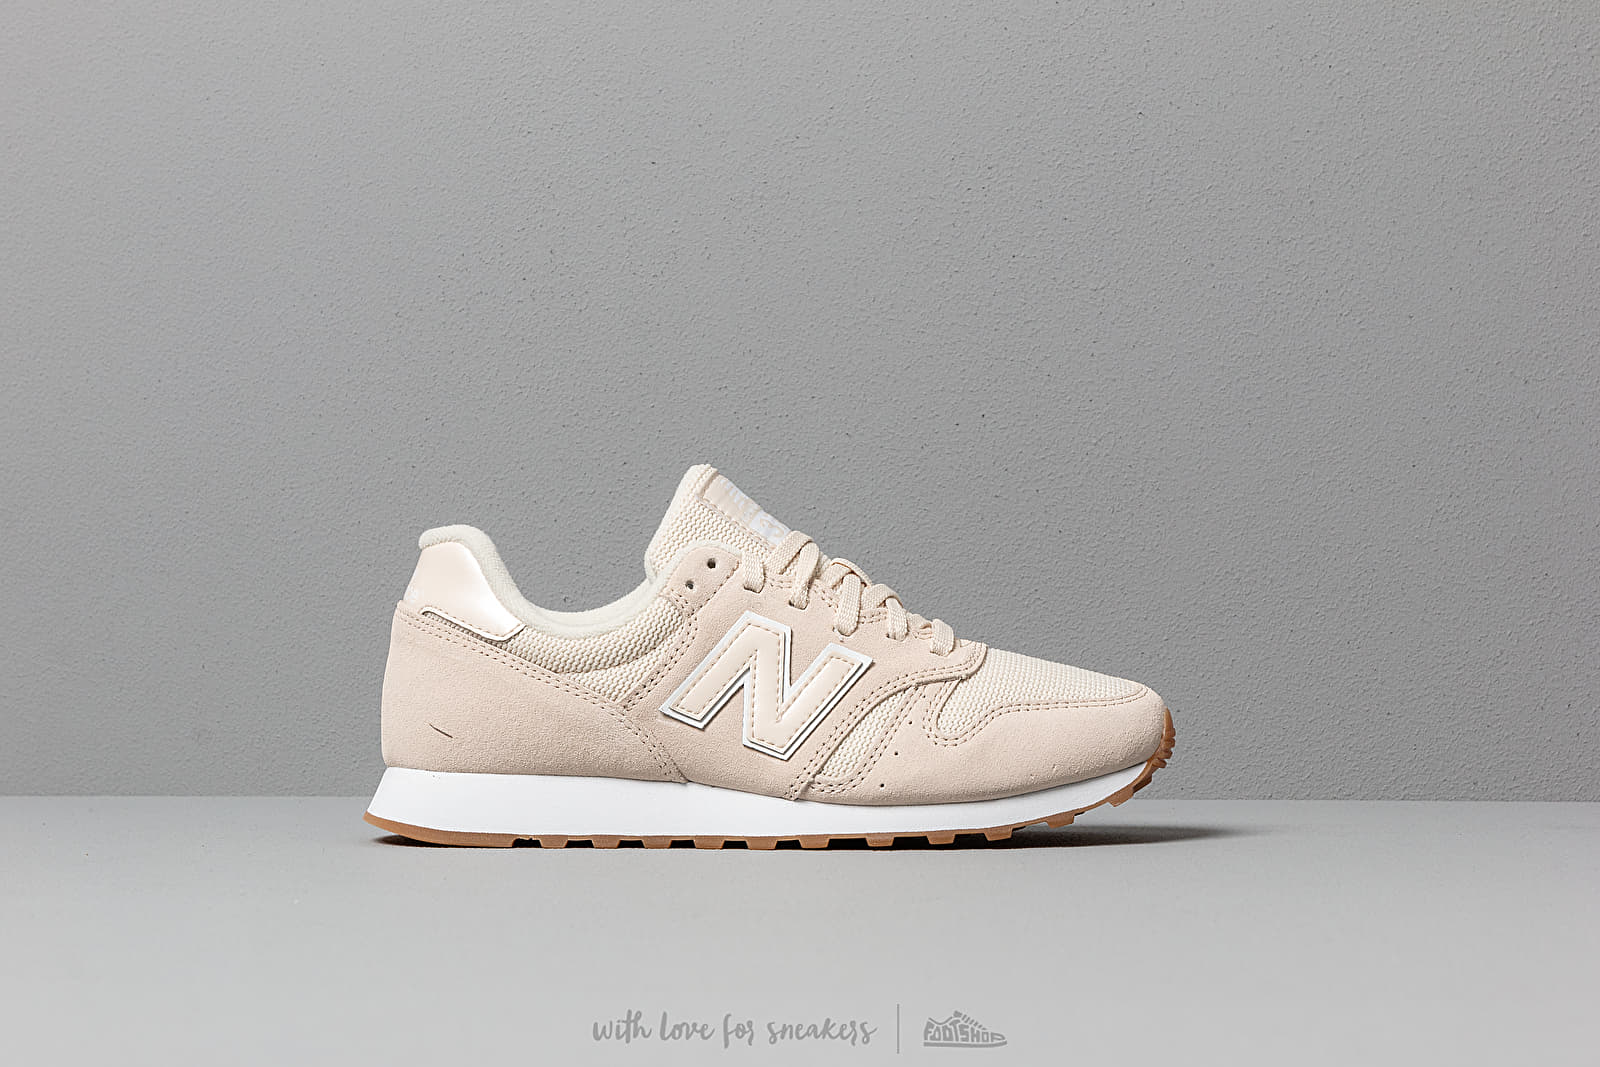 best service 55d3a 47089 New Balance 373 Whitecap  White at a great price 77 € buy at Footshop